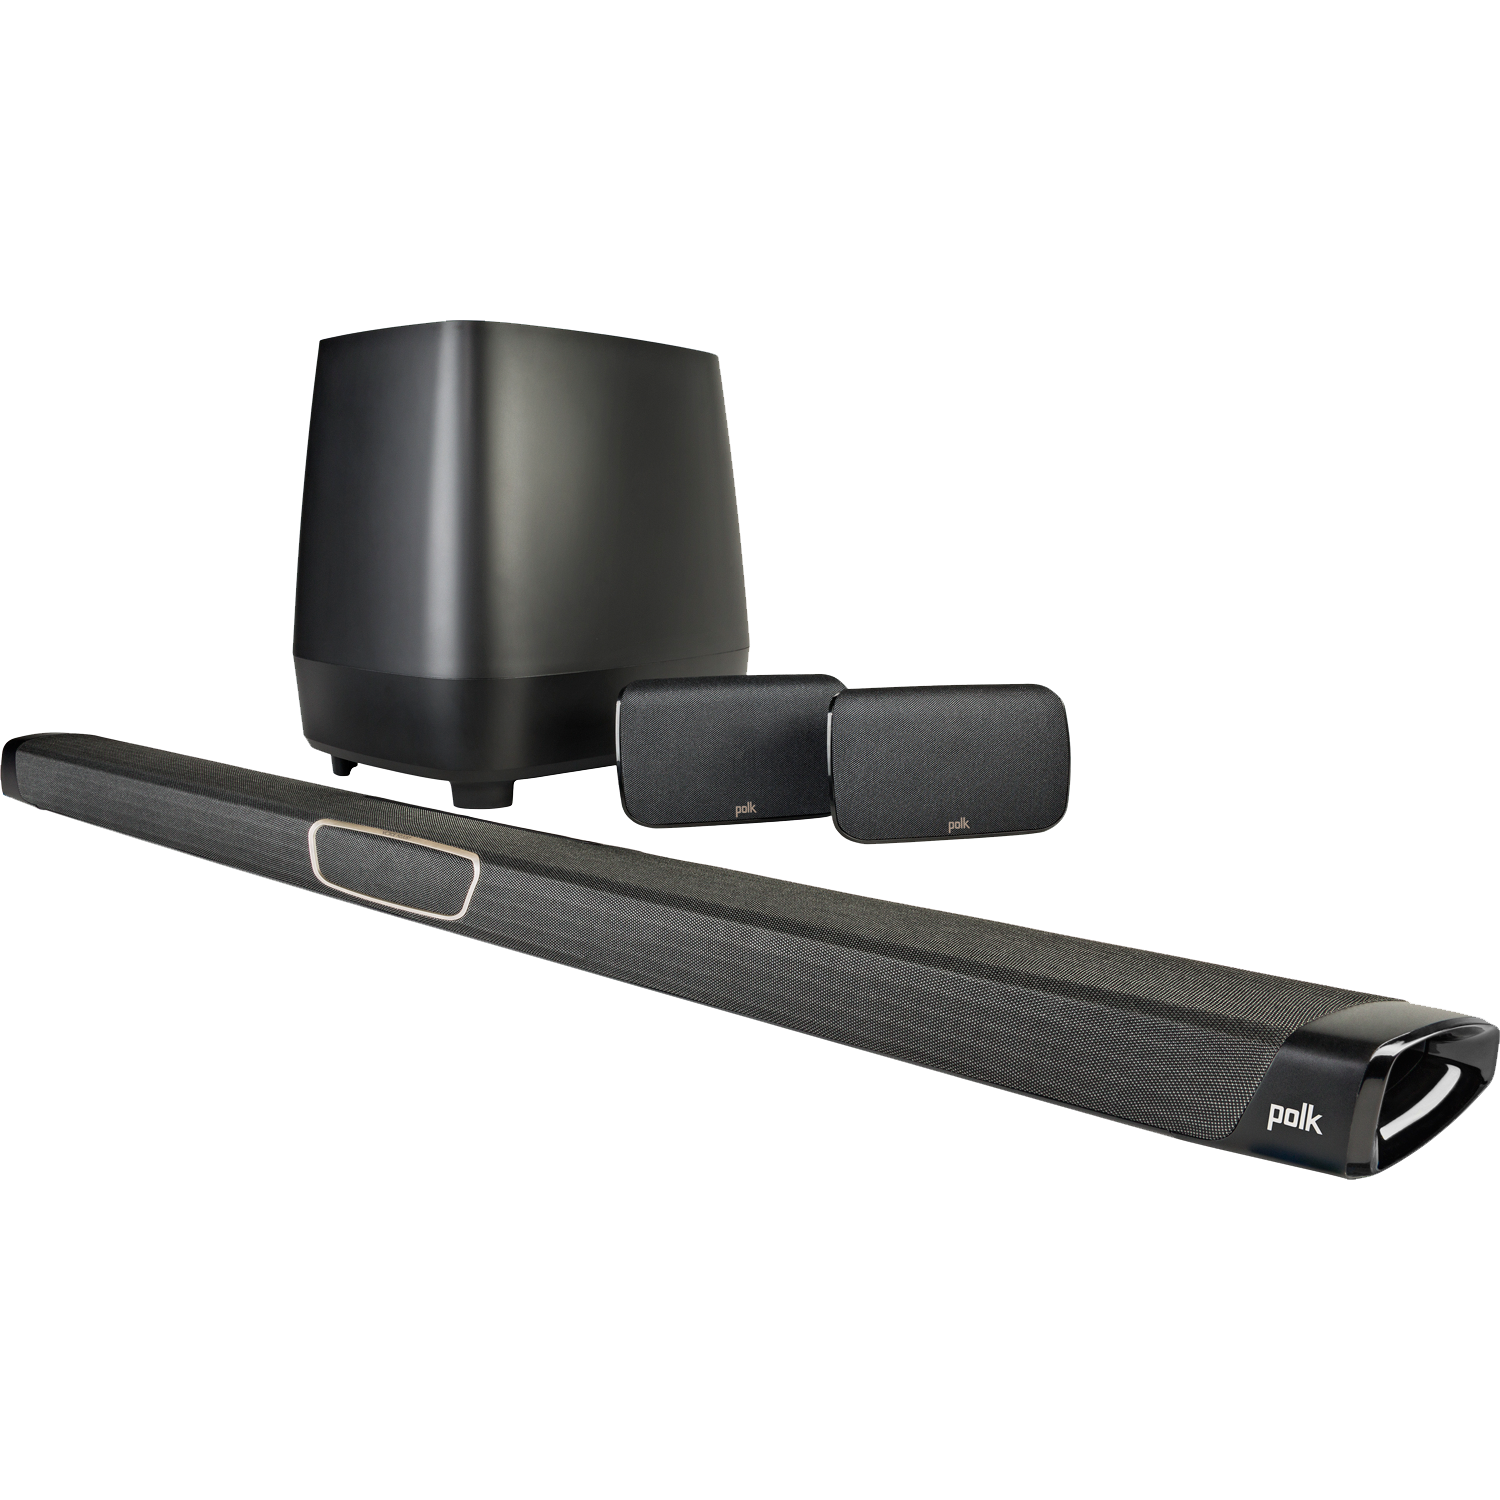 POLK AUDIO MagniFi MAX SR Soundbar w/ Sub and Surround Speakers